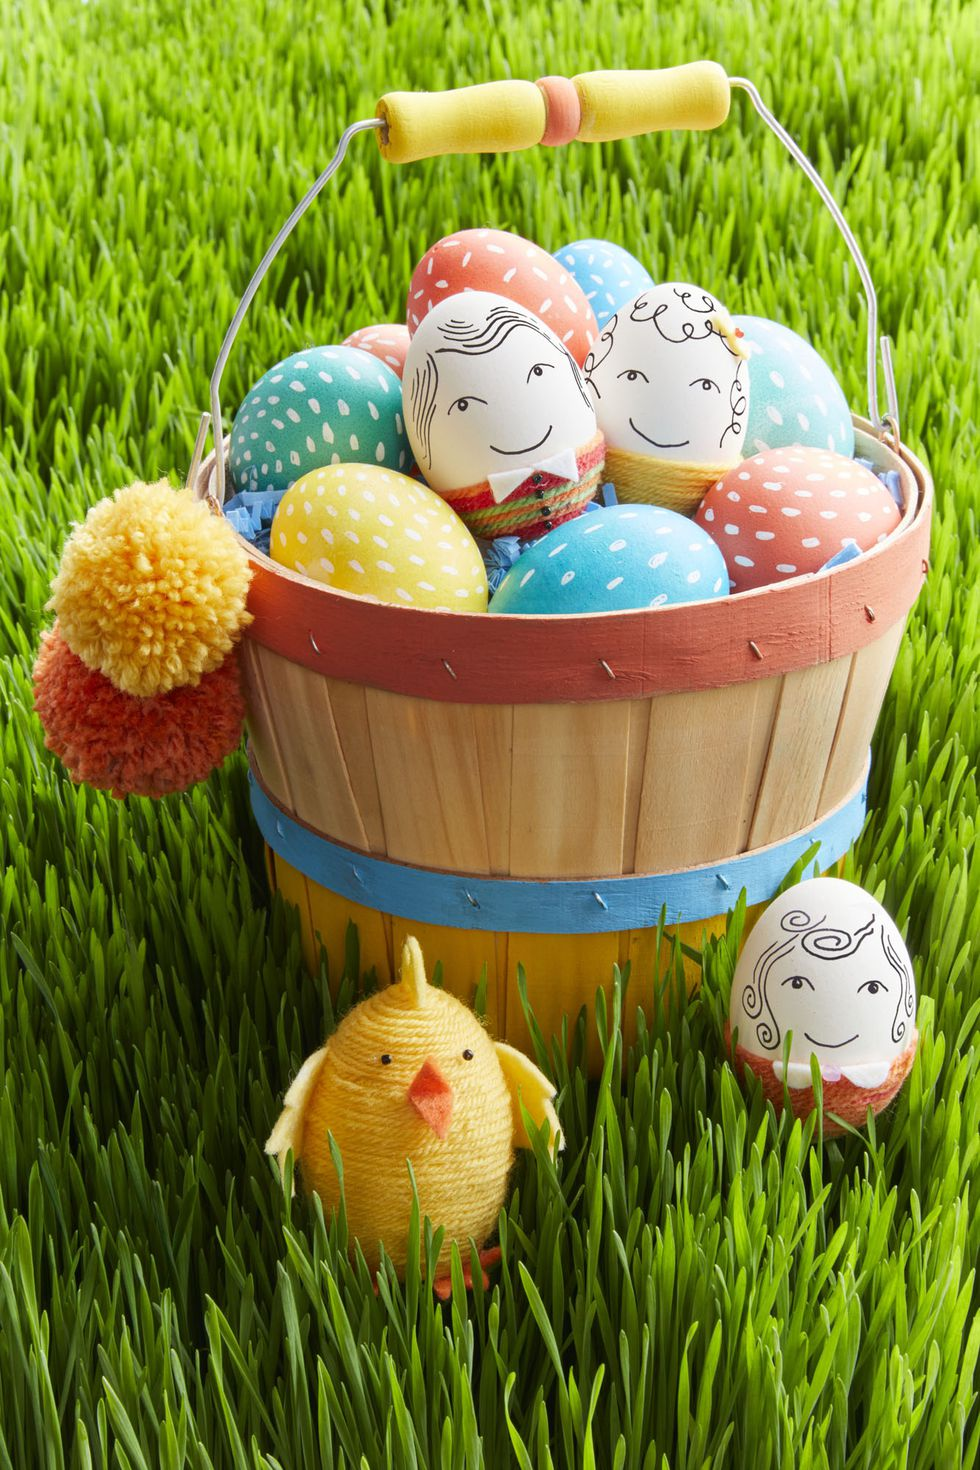 easter-egg-crafts-bucket-wdy-0418-1520289813